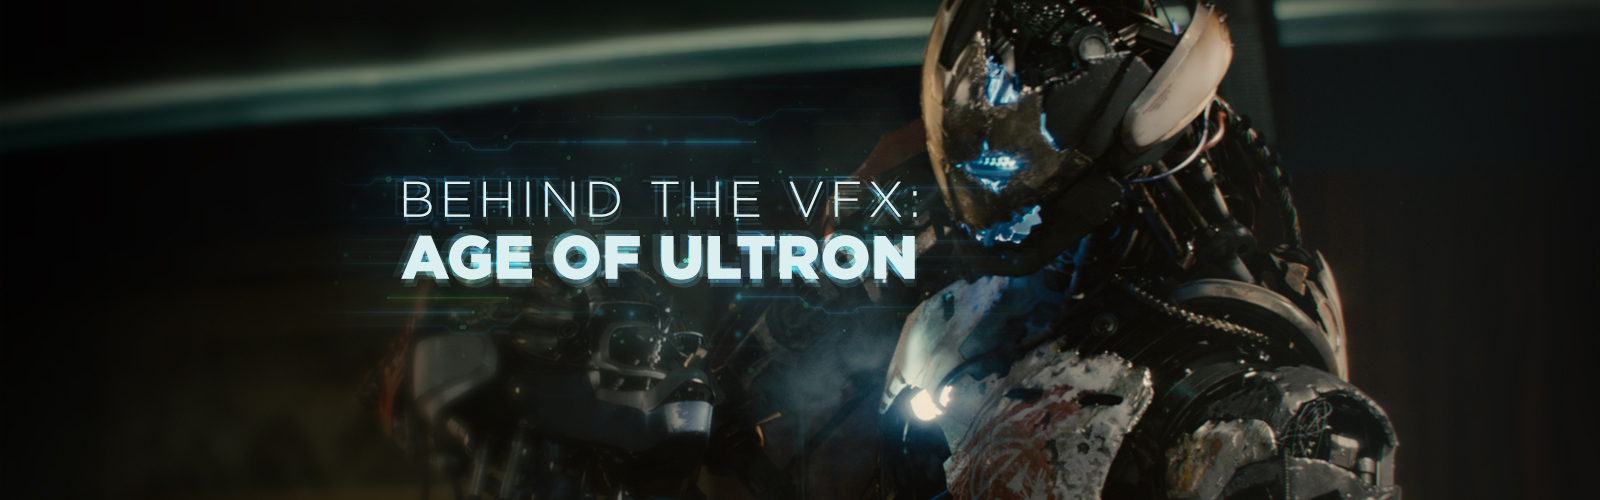 Behind The VFX The Trixters Of Age Of Ultron Pluralsight - 27 incredible before and after shots of visual effects in film